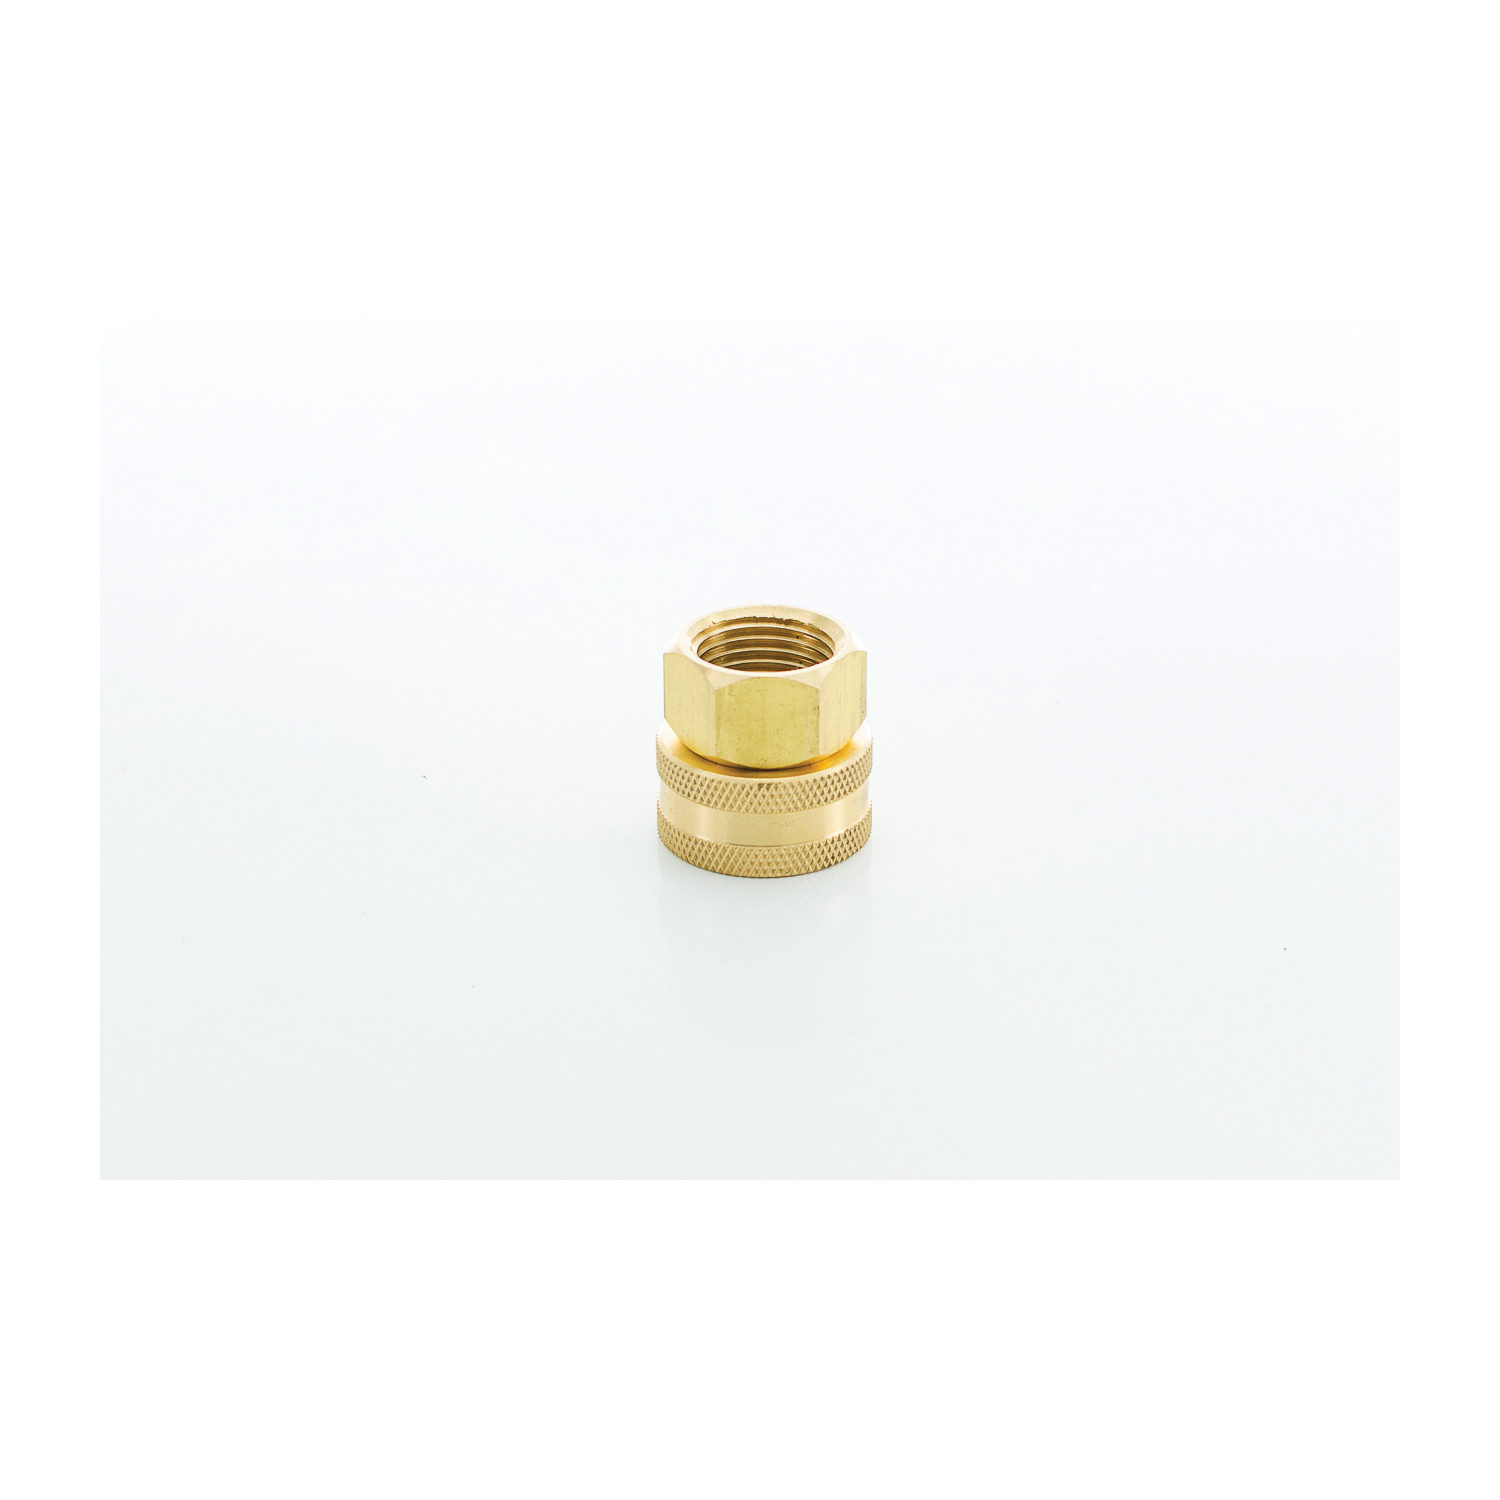 PASCO 2141 Female Swivel, 3/4 x 1/2 in, Female Hose Thread x FNPT